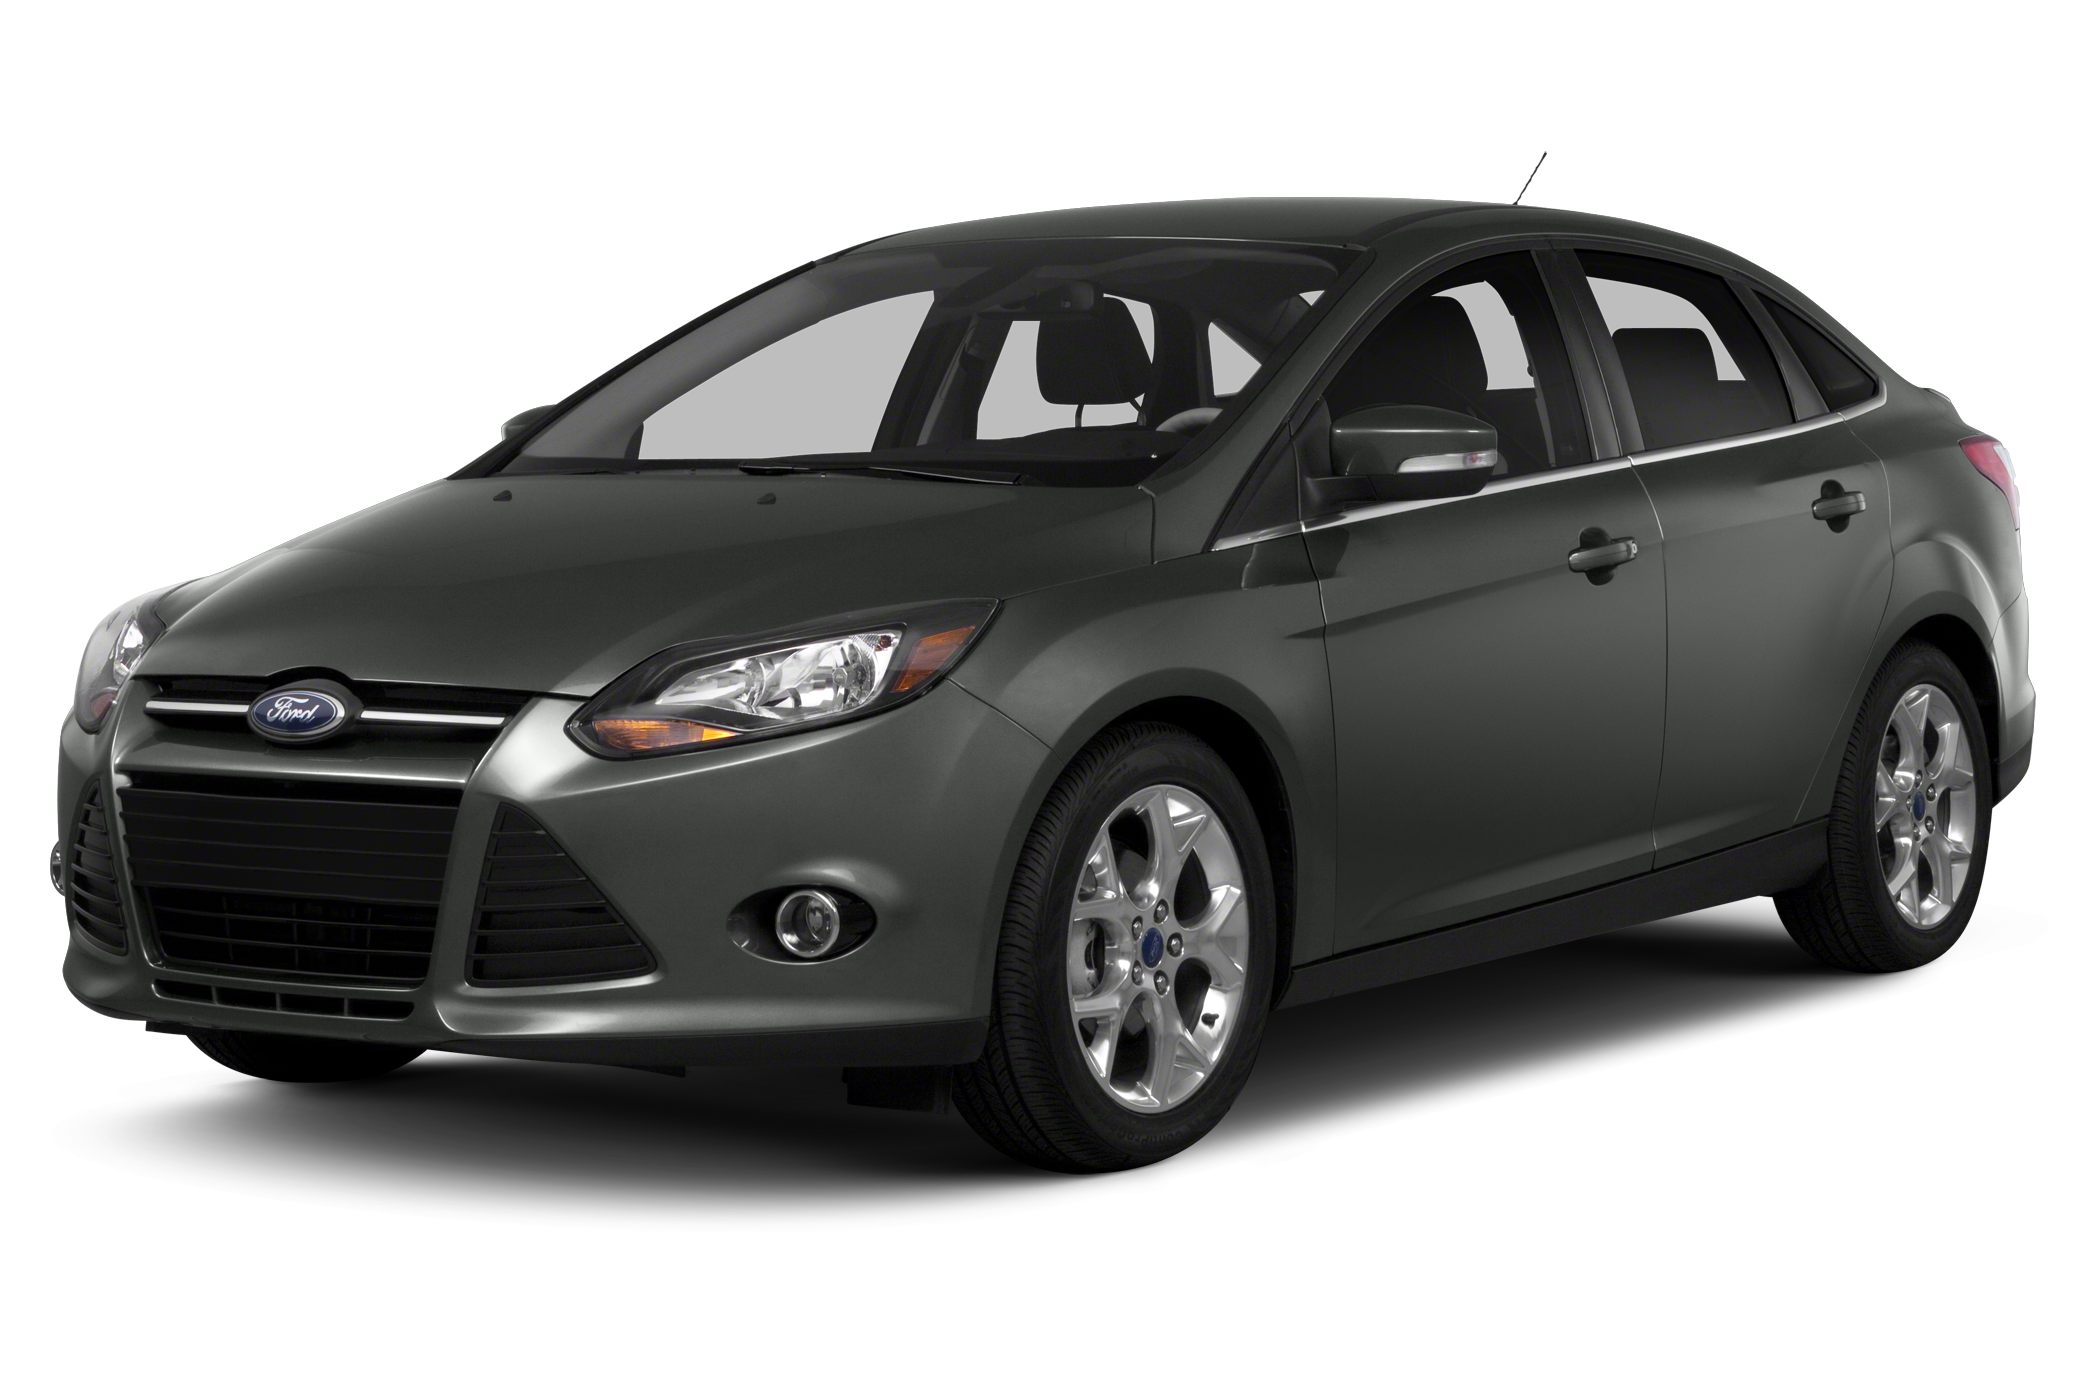 2014 Ford Focus SE Sedan for sale in Sweetwater for $15,875 with 1,839 miles.